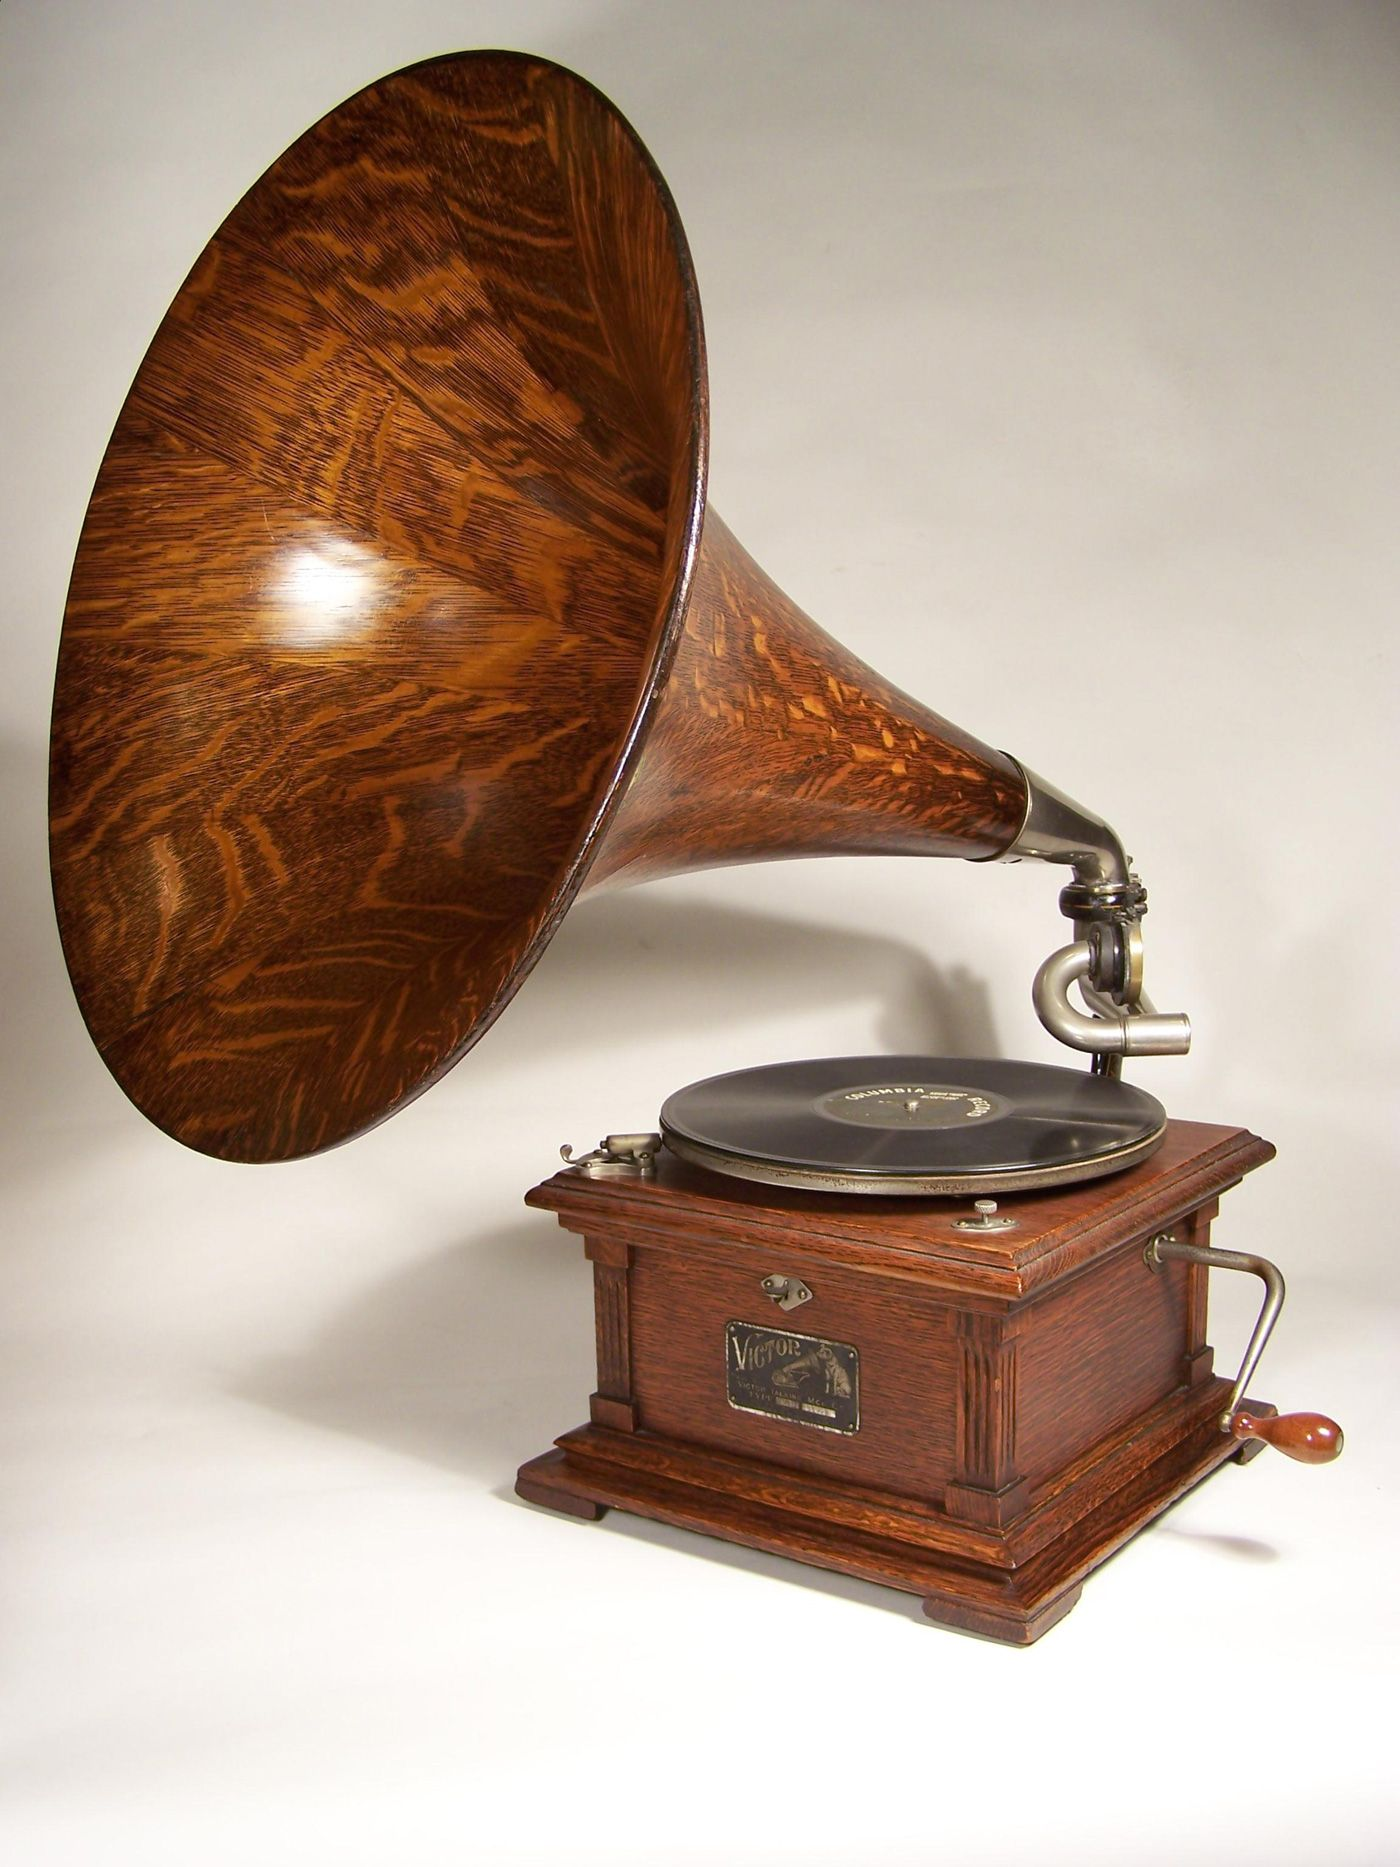 Classic Gramophone Grammophon Neu Retro-music-player Phonograph Sound-machine